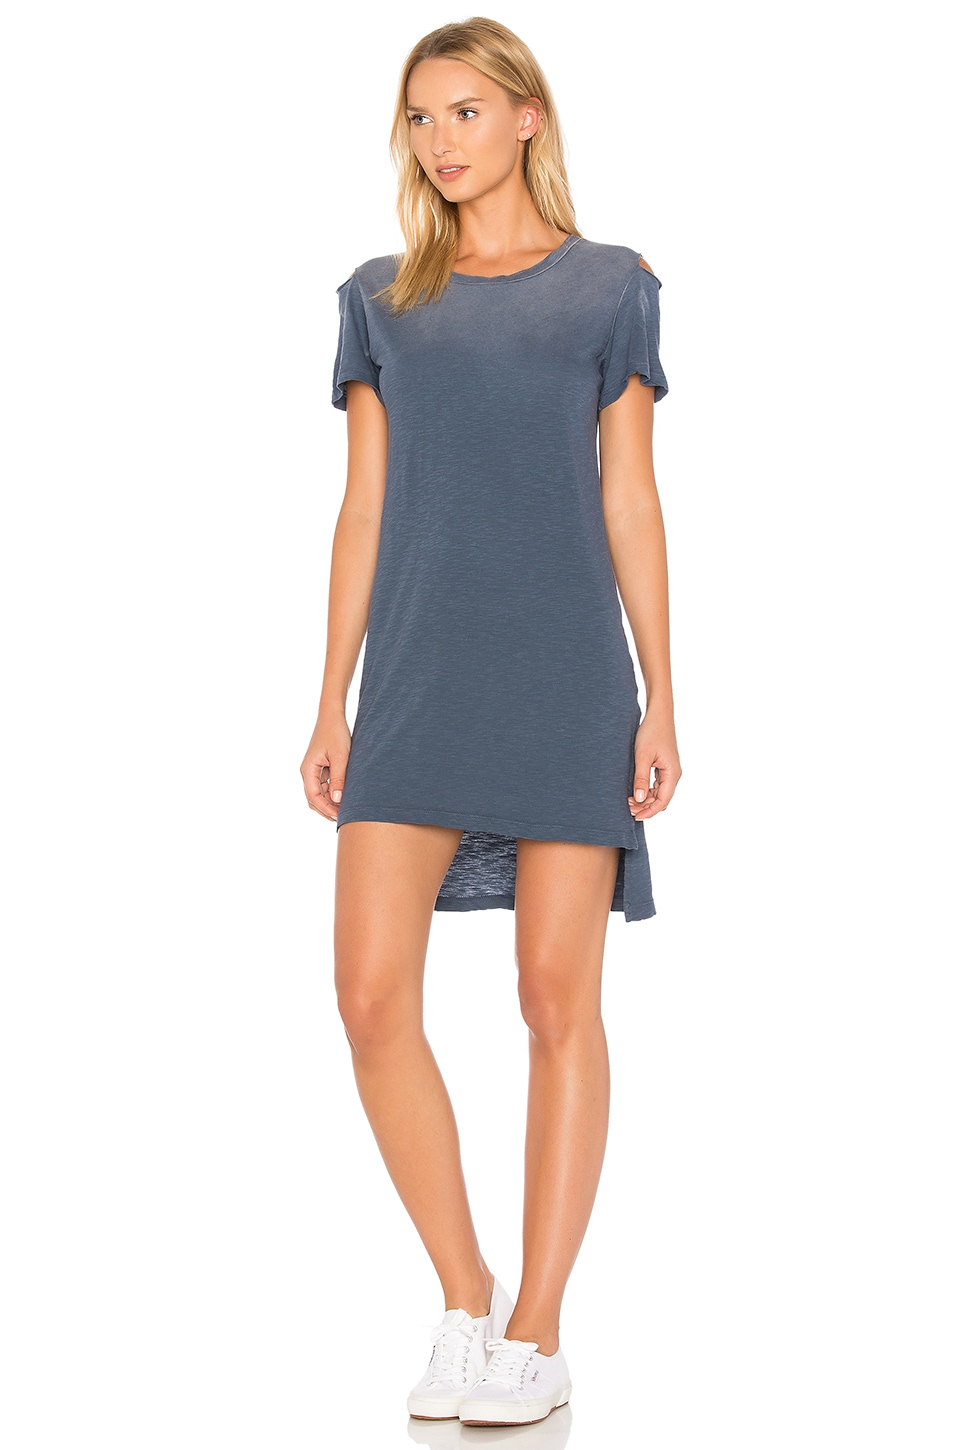 LNA Luna Tee Dress in Navy Ink Potassium